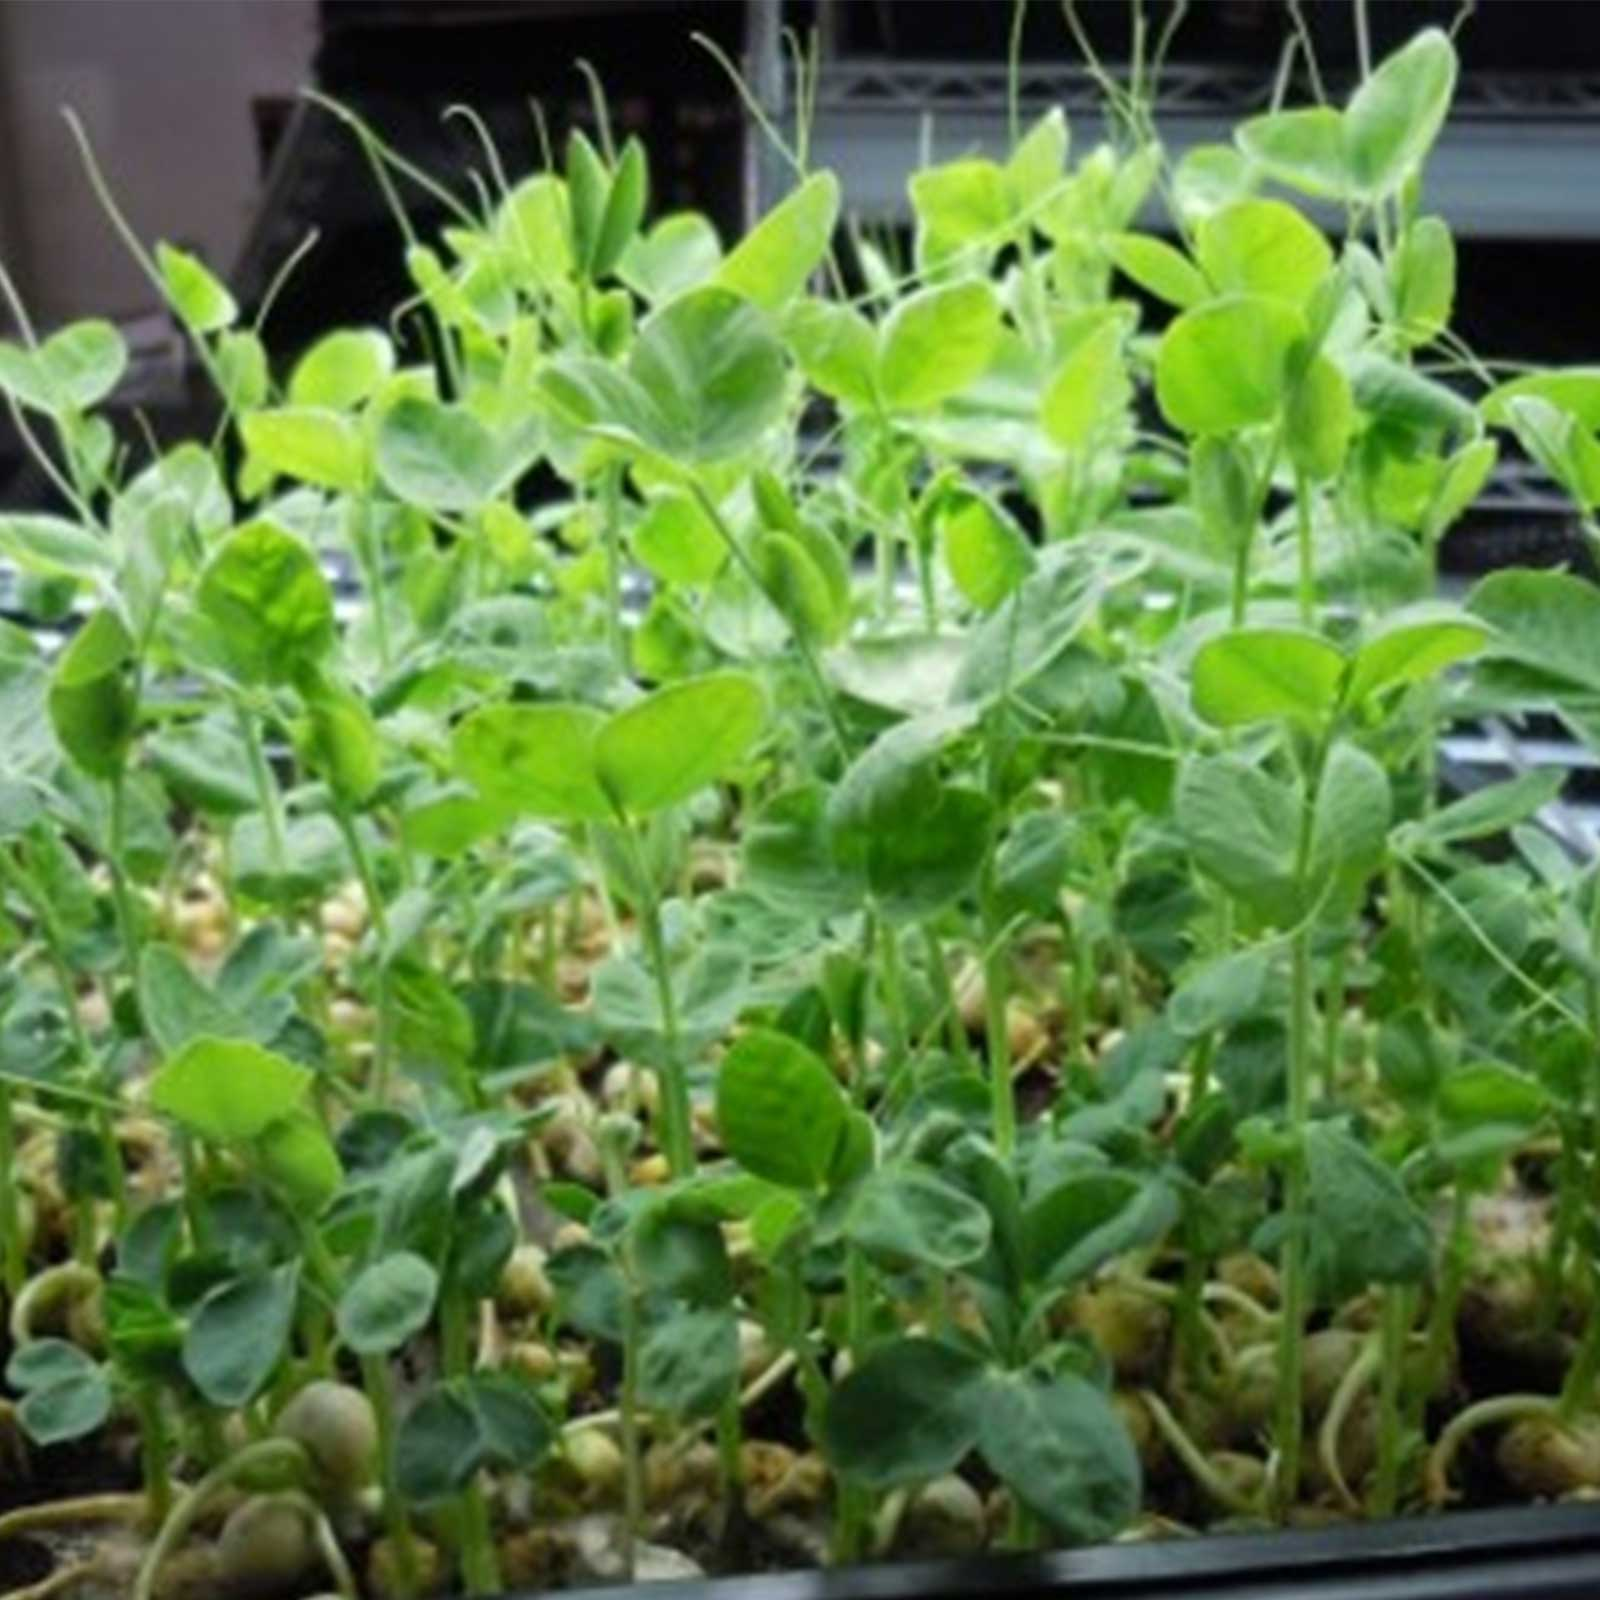 Speckled Pea Sprouting Seeds - 50 Lbs Bulk - Certified Organic, Non-GMO Green Pea Sprout Seeds - Sprouts & Microgreens